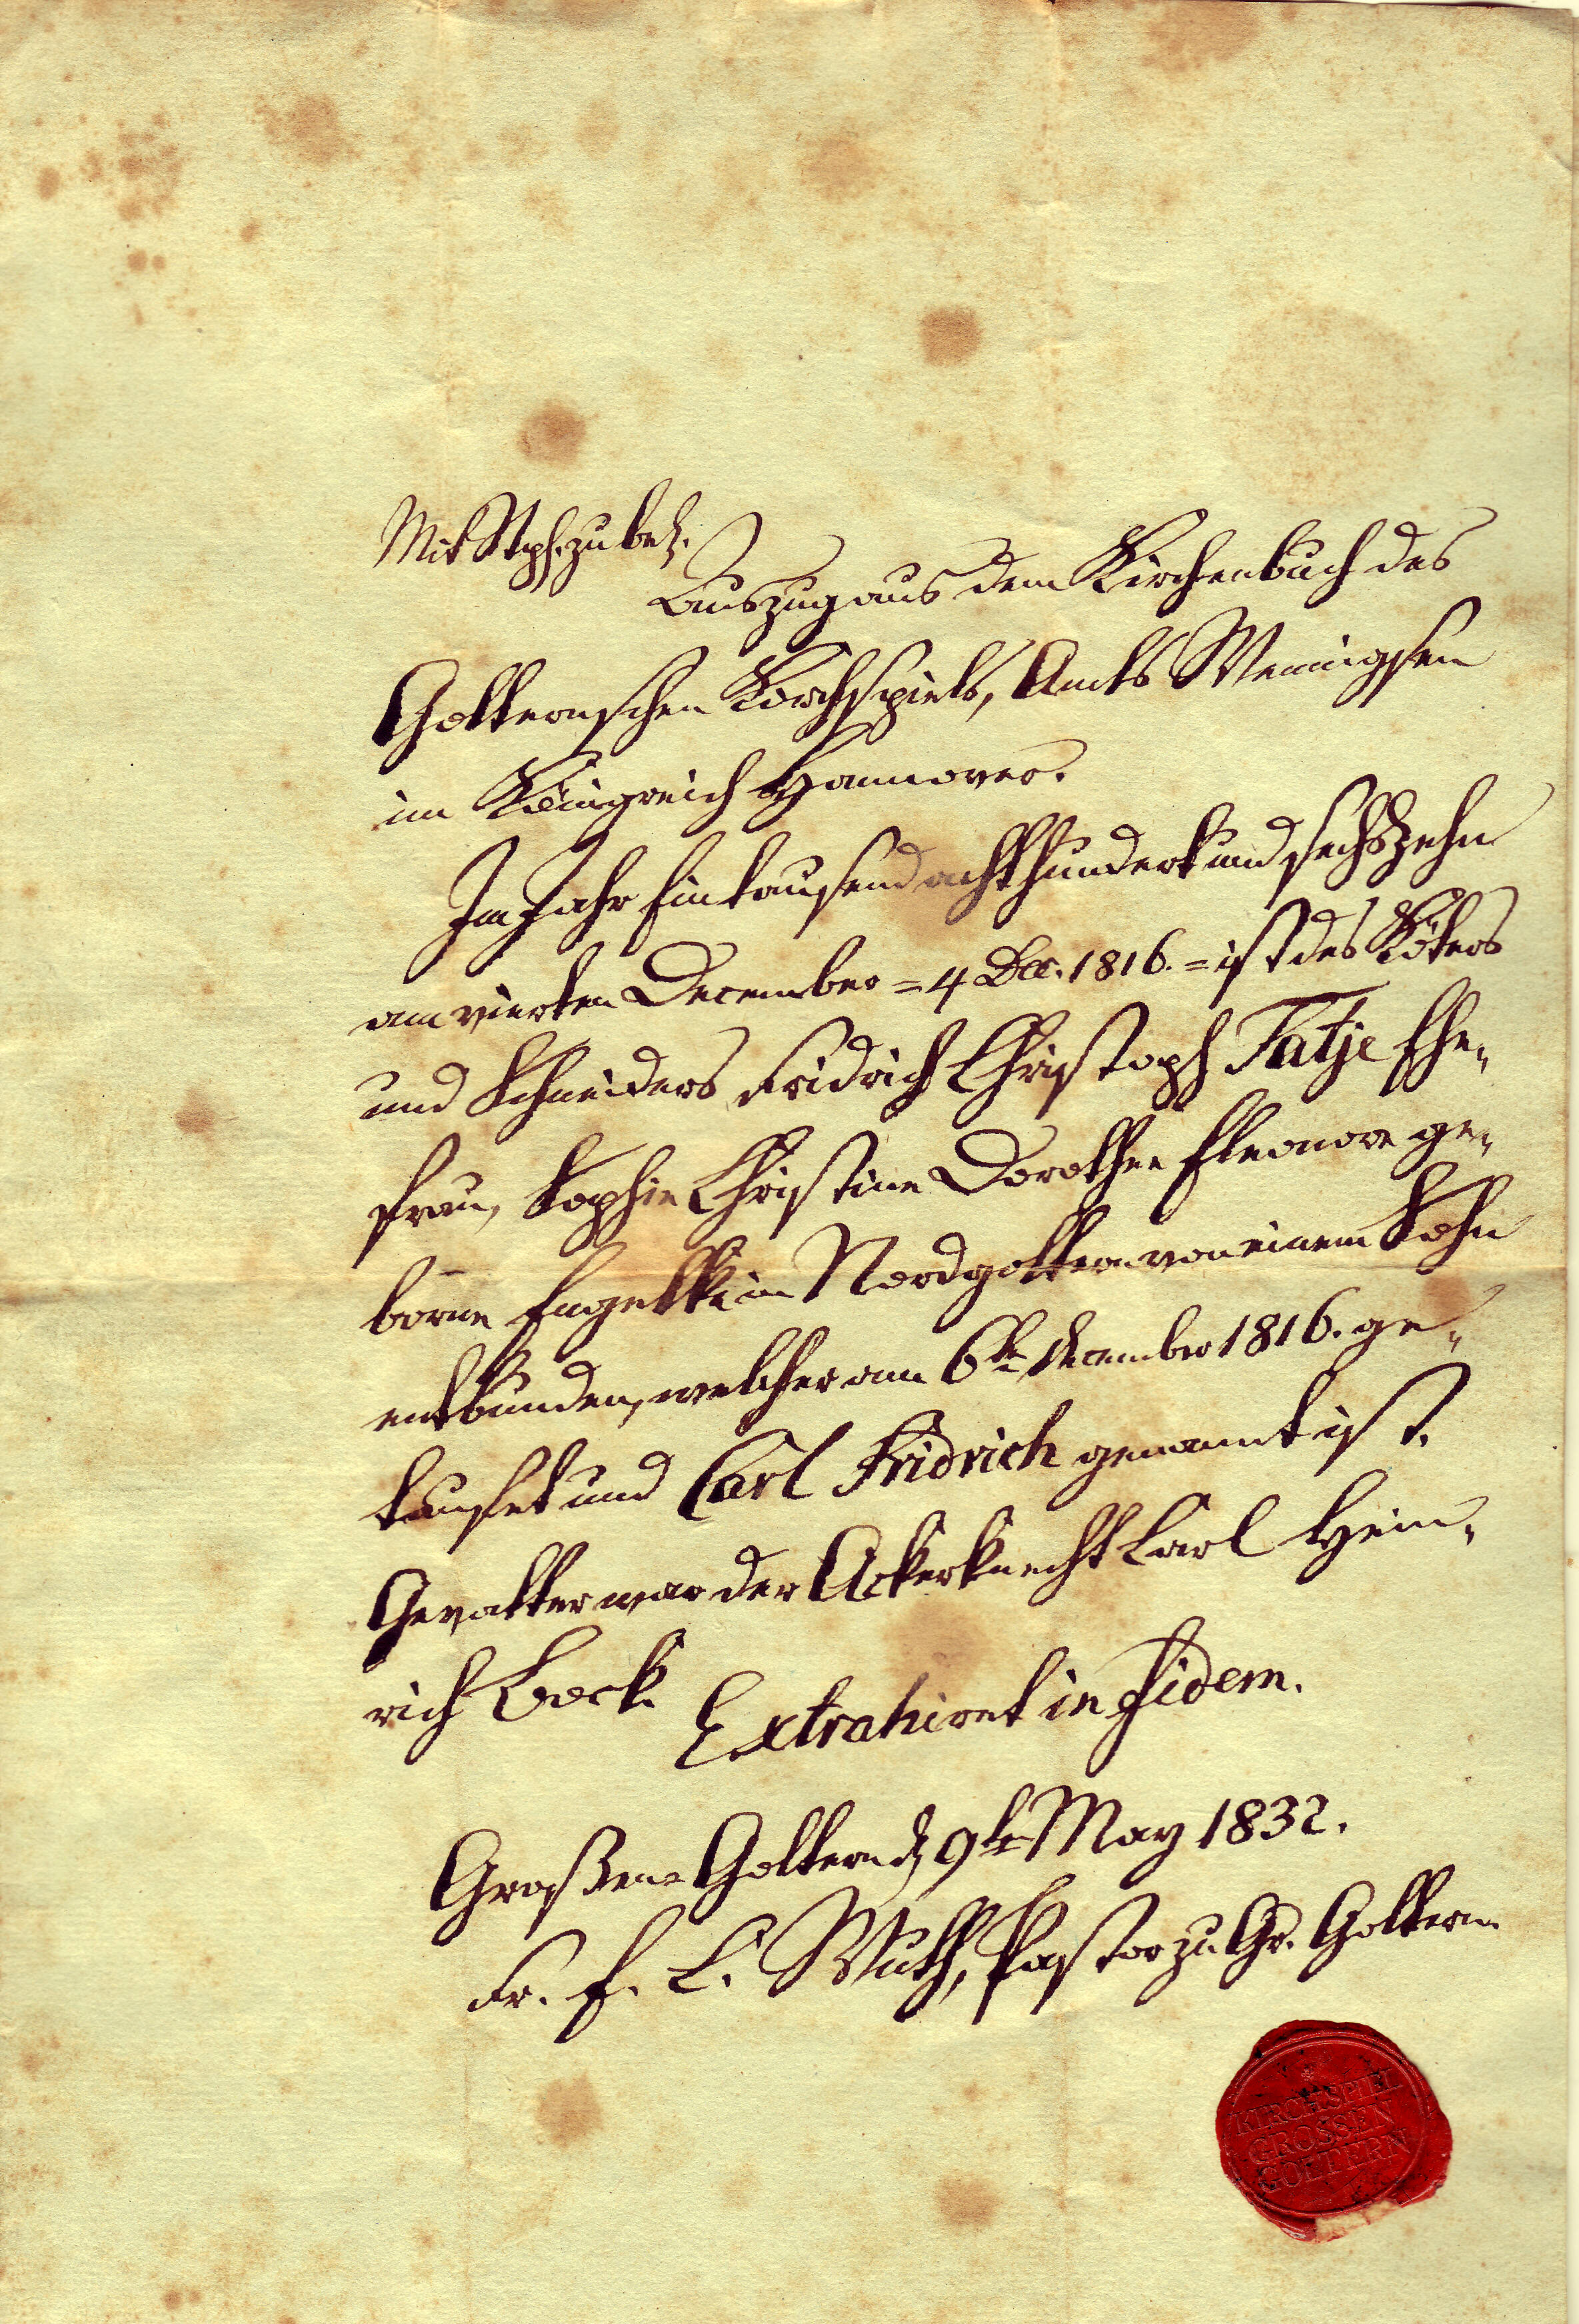 Reading German Scrift or Current Church Records